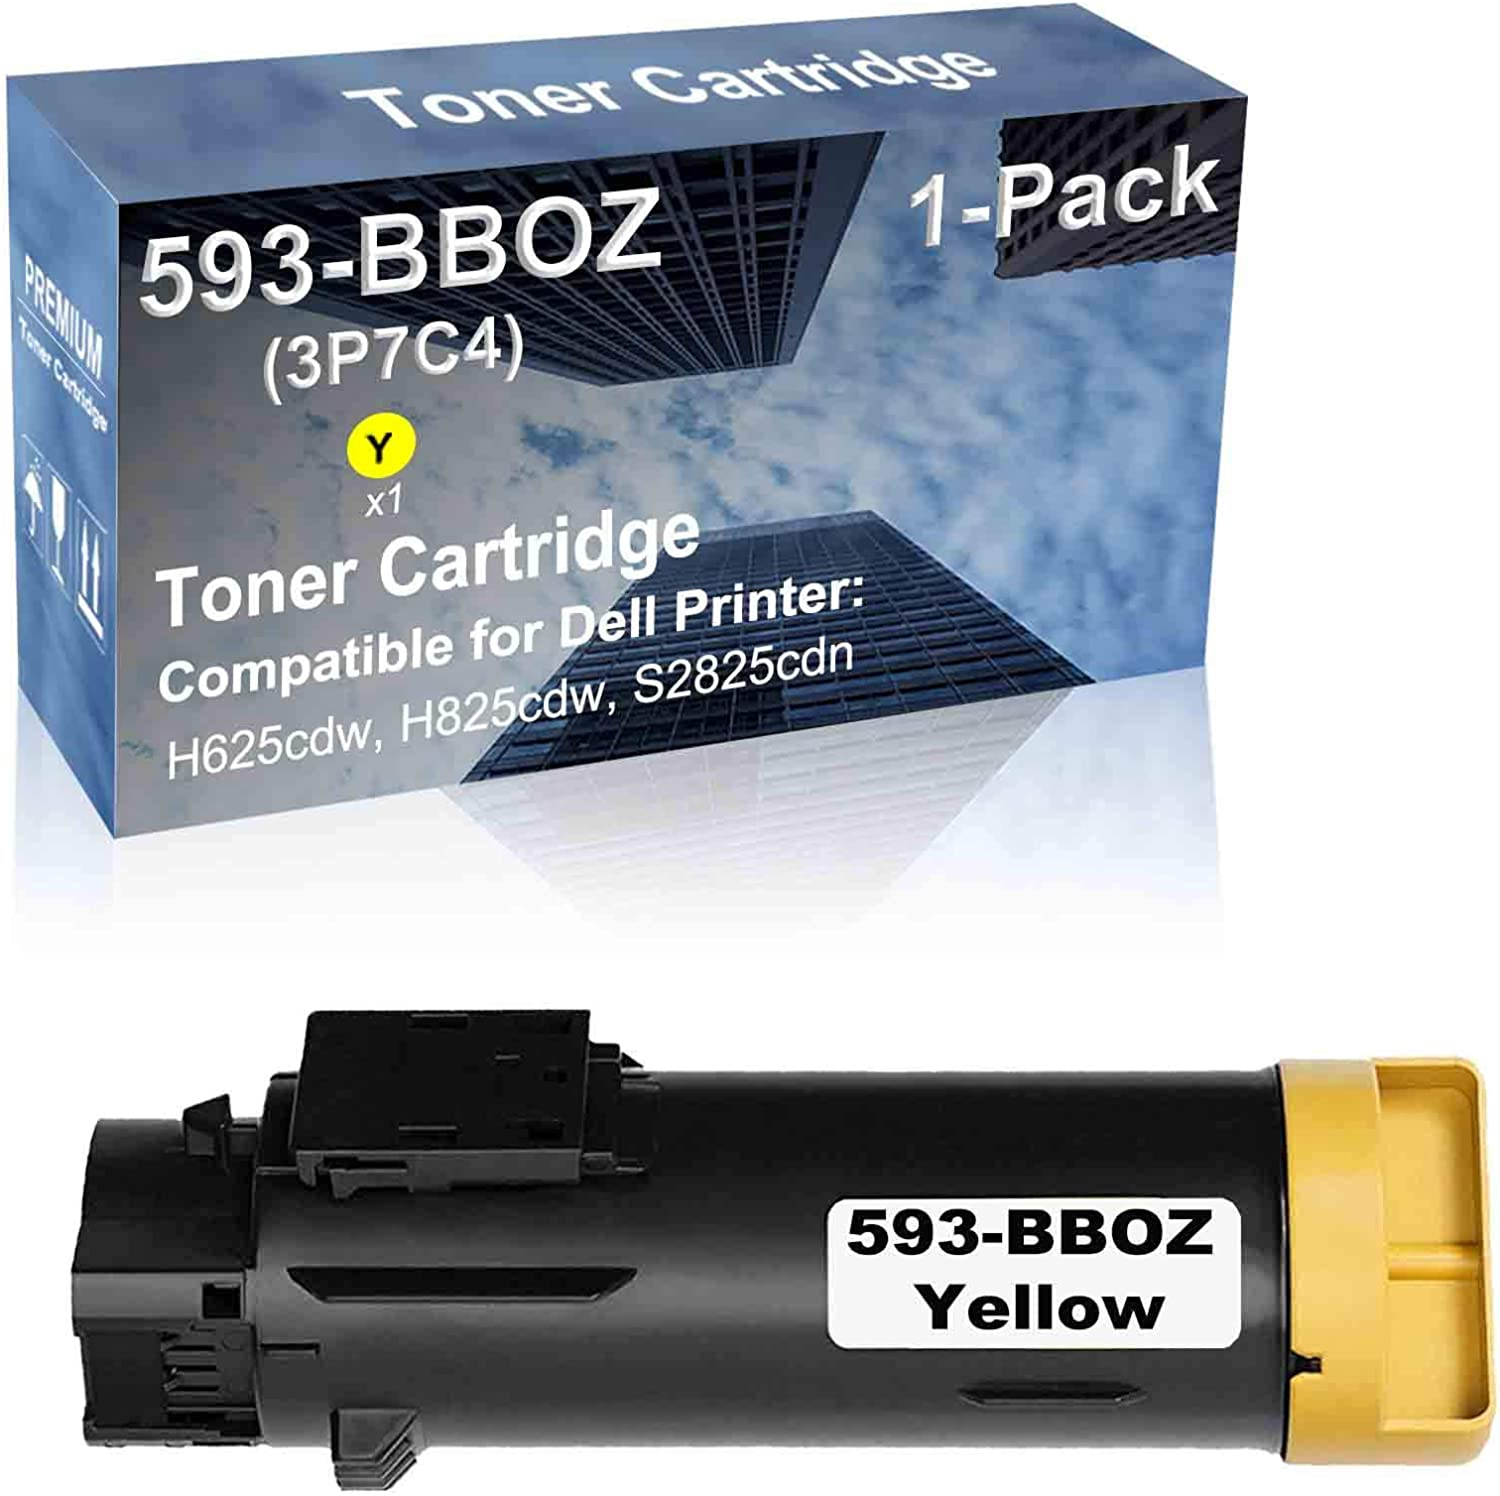 1-Pack (Yellow) Compatible High Capacity 593-BBOZ Toner Cartridge Used for Dell H625cdw, H825cdw, S2825cdn Printer